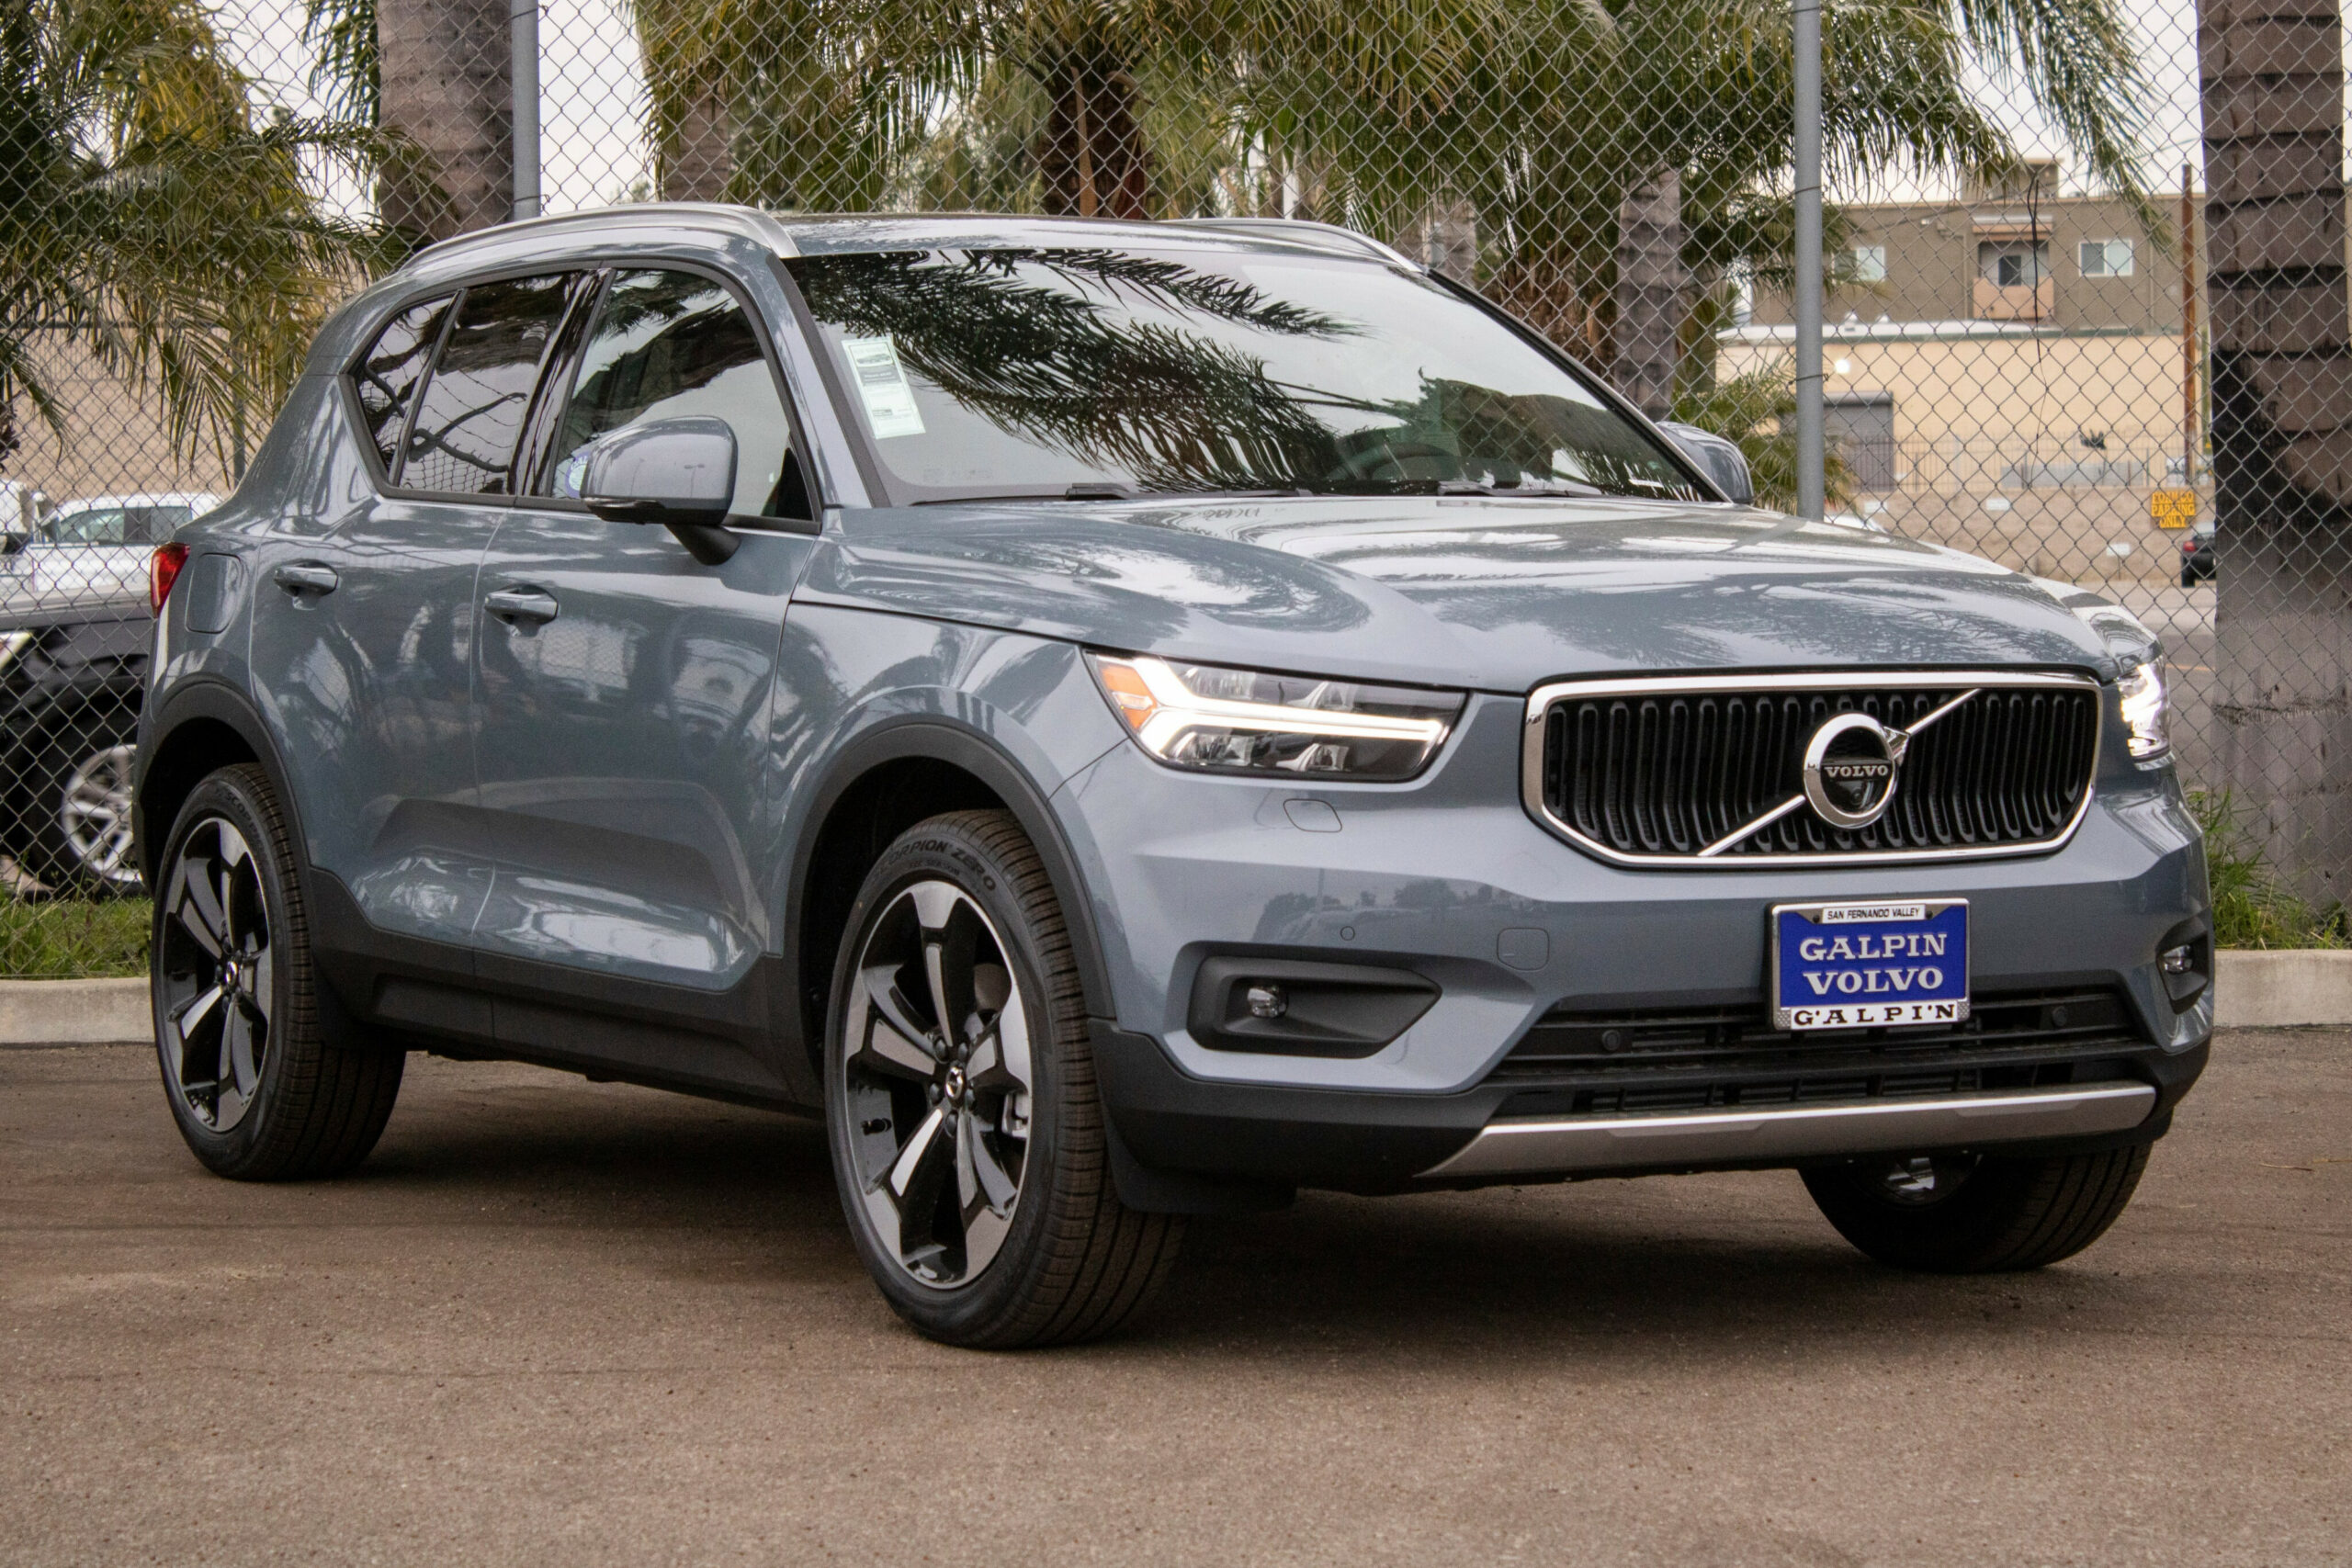 New 8 Volvo XC8 For Sale/Lease | Van Nuys, CA | Stock# V8 - 2020 volvo xc40 lease